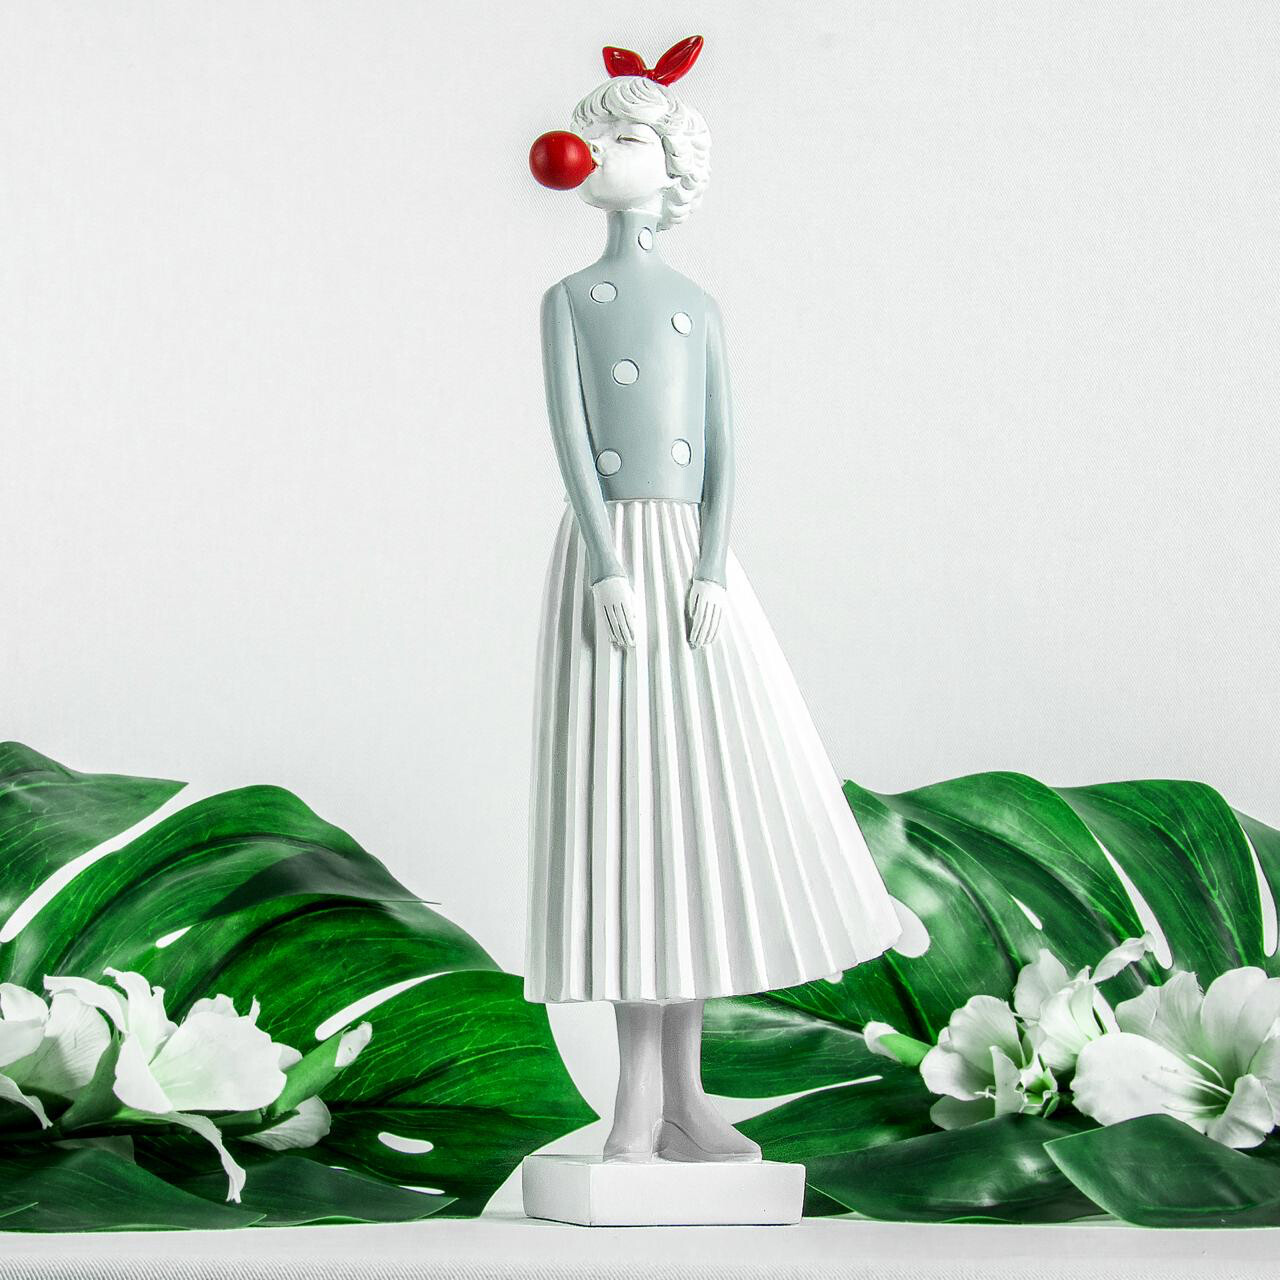 White Skirt Lady Sculpture - Cool Ornaments